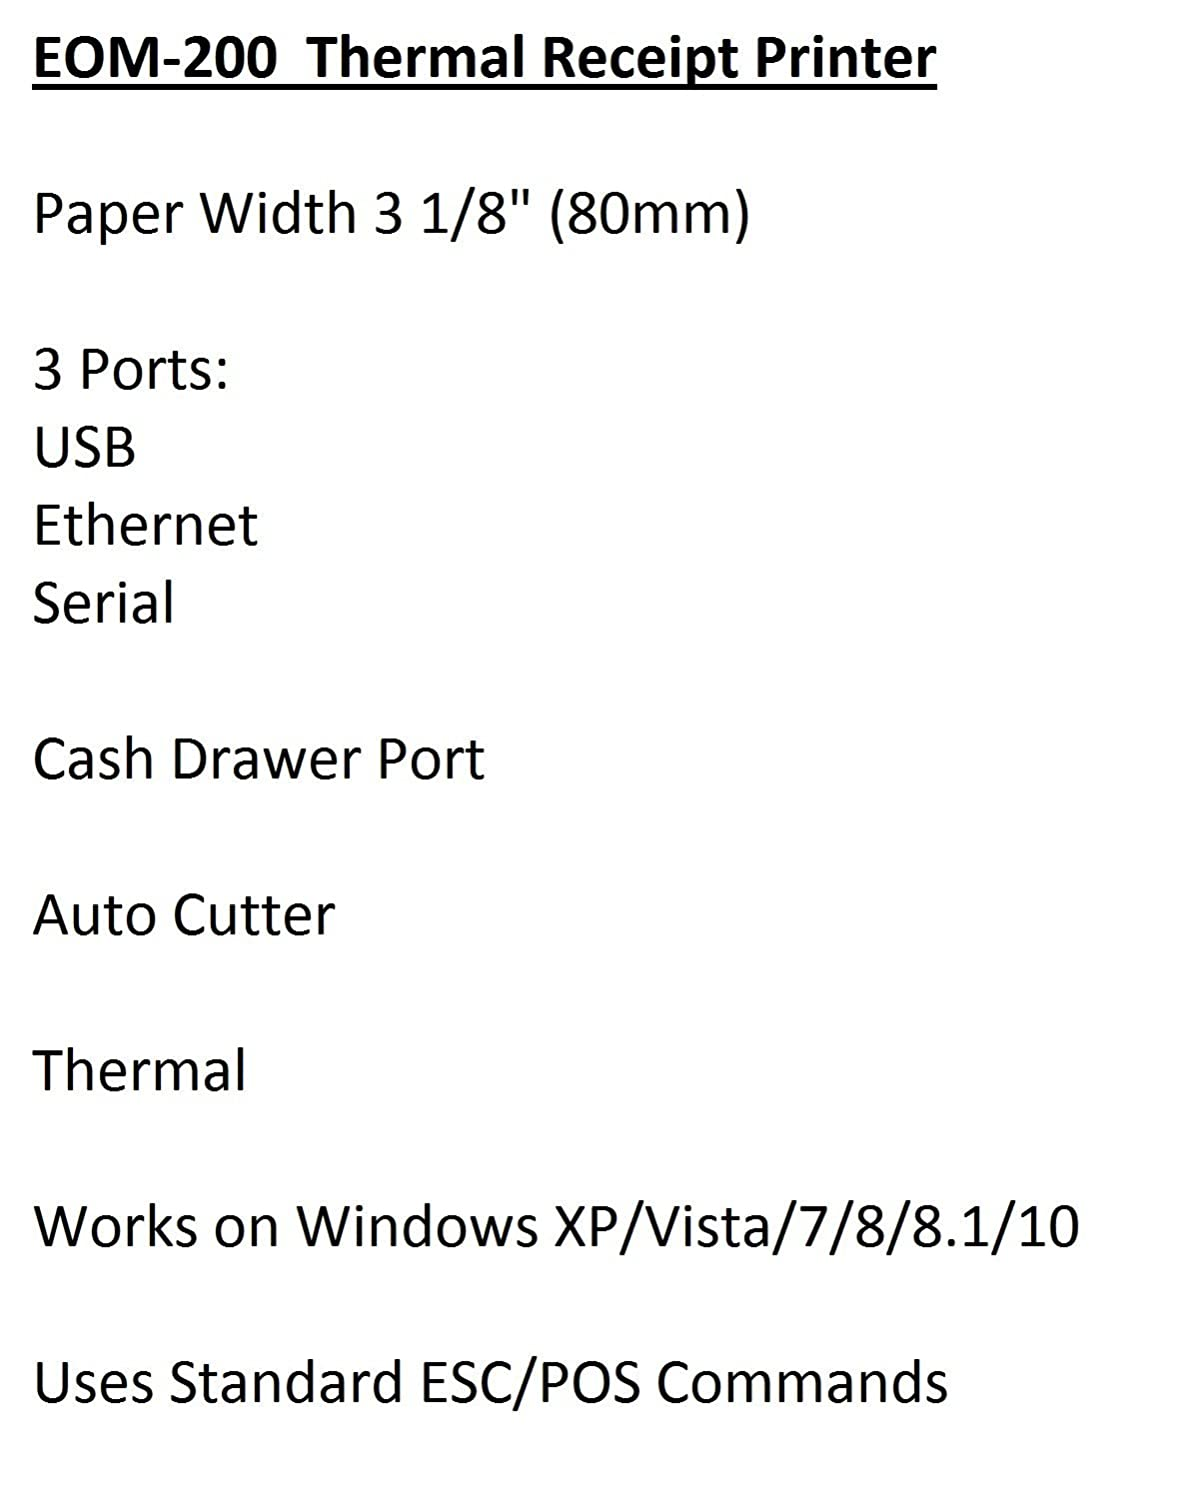 EOM-POS Thermal Receipt Printer - USB, Ethernet/LAN, Serial Ports - Auto  Cutter - Beeper/Buzzer- Cash Drawer Port - Paper Width 3 1/8